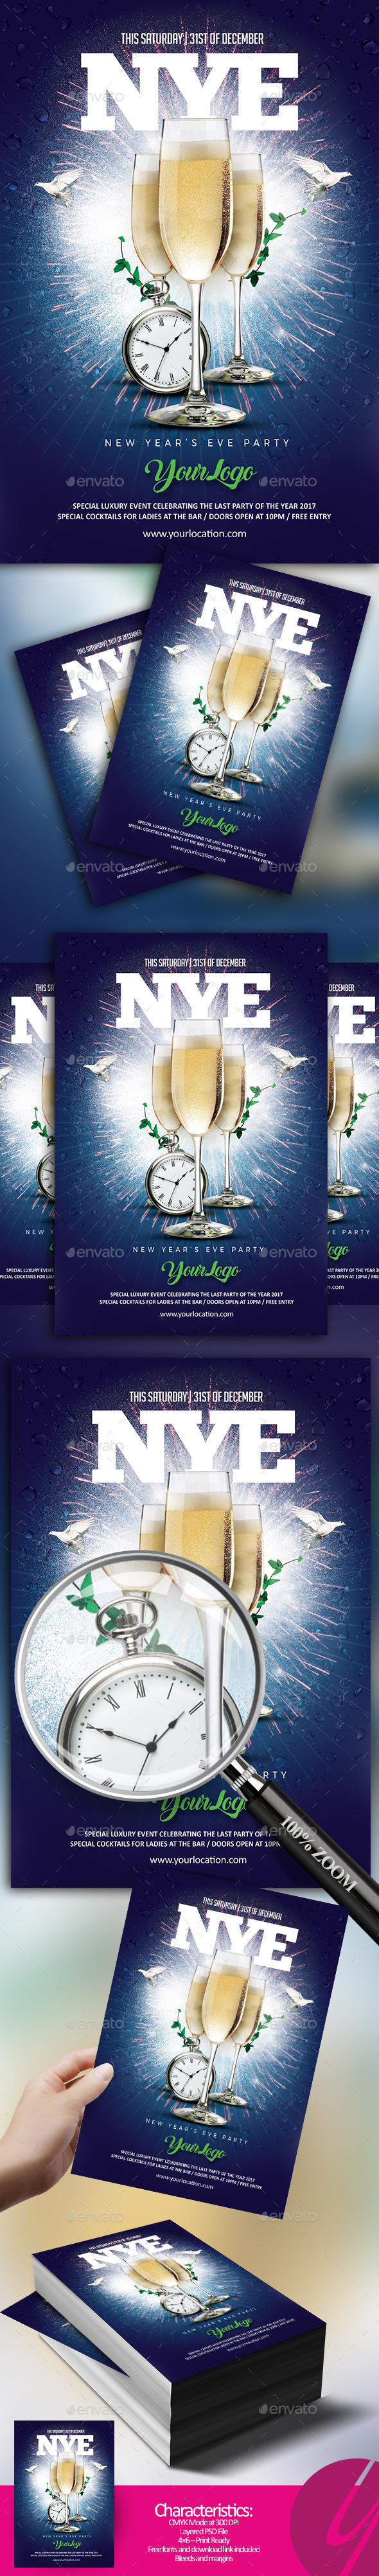 NYE Champagne Party - Clubs & Parties Events